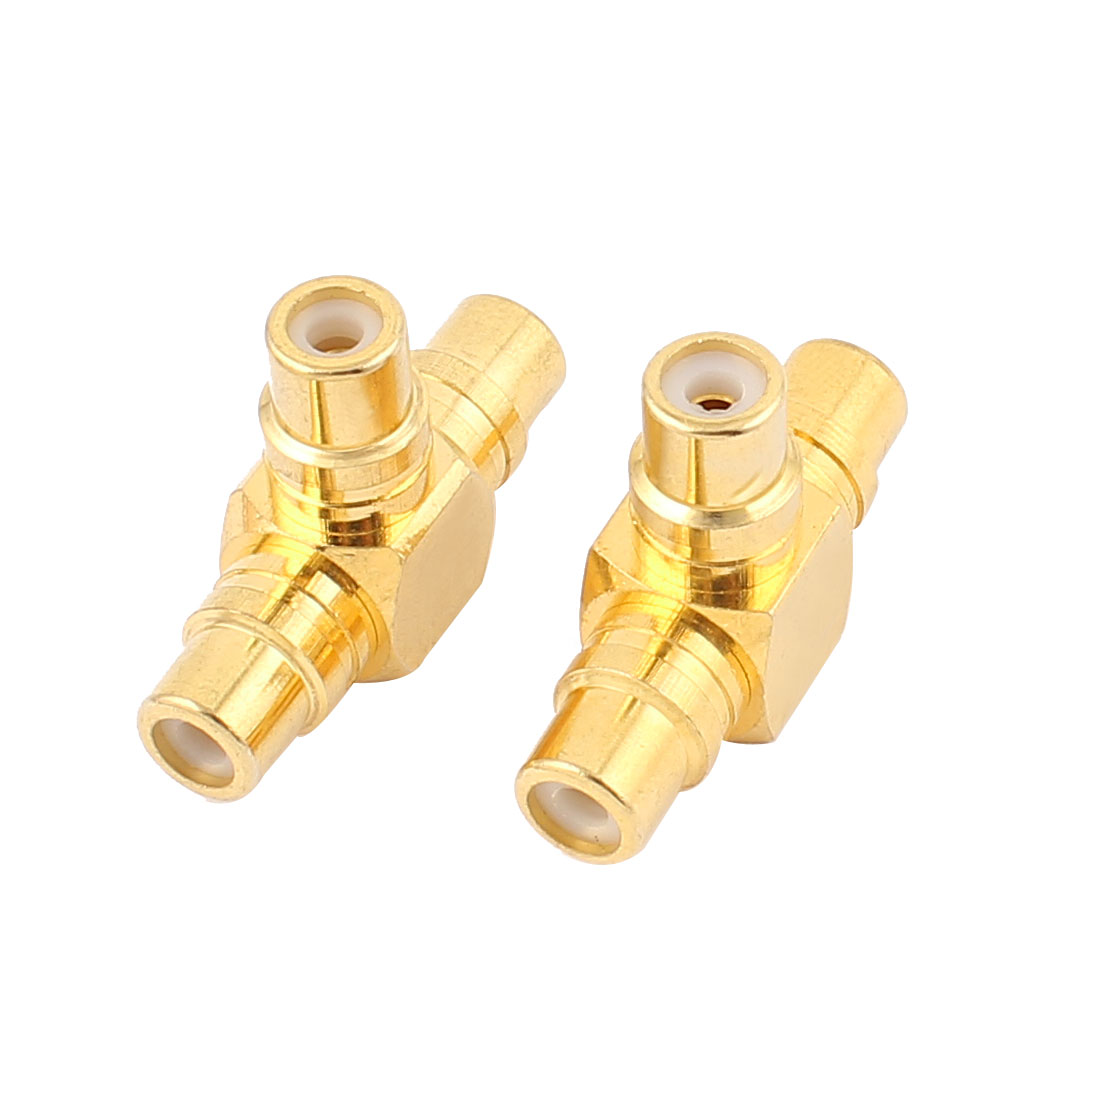 2 Pcs 3 Way Female Socket T Shape RCA Coaxial Connector Adapter